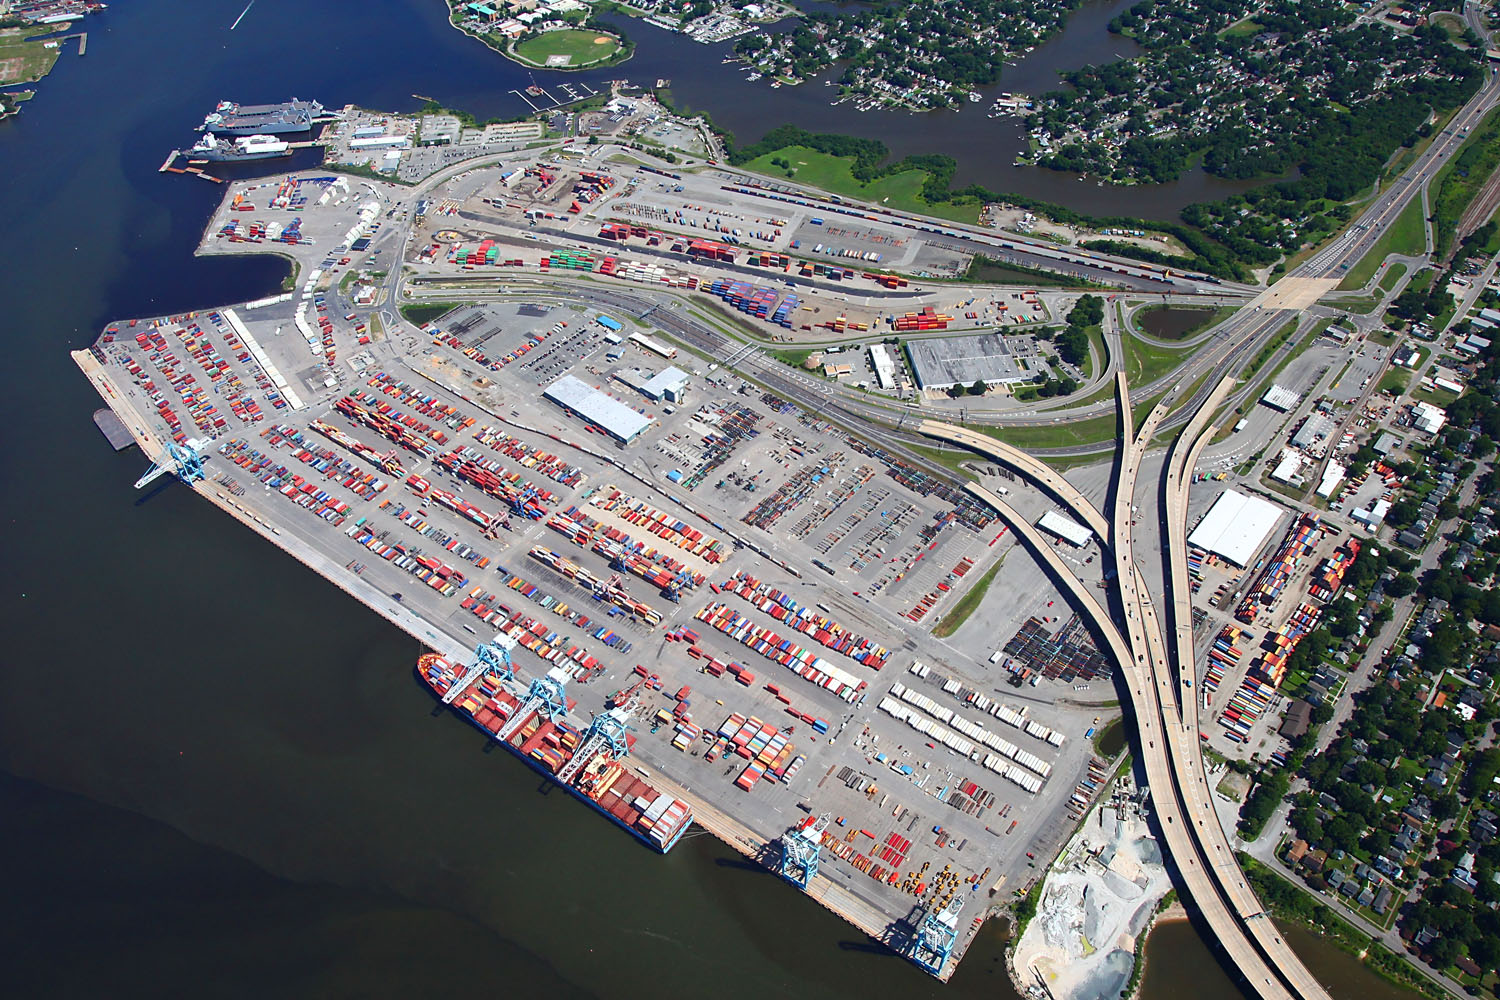 Virginia's East Coast Advantage - Virginia's unmatched port infrastructure, high-quality maritime workforce and thriving economy differentiate it from every other East Coast state.